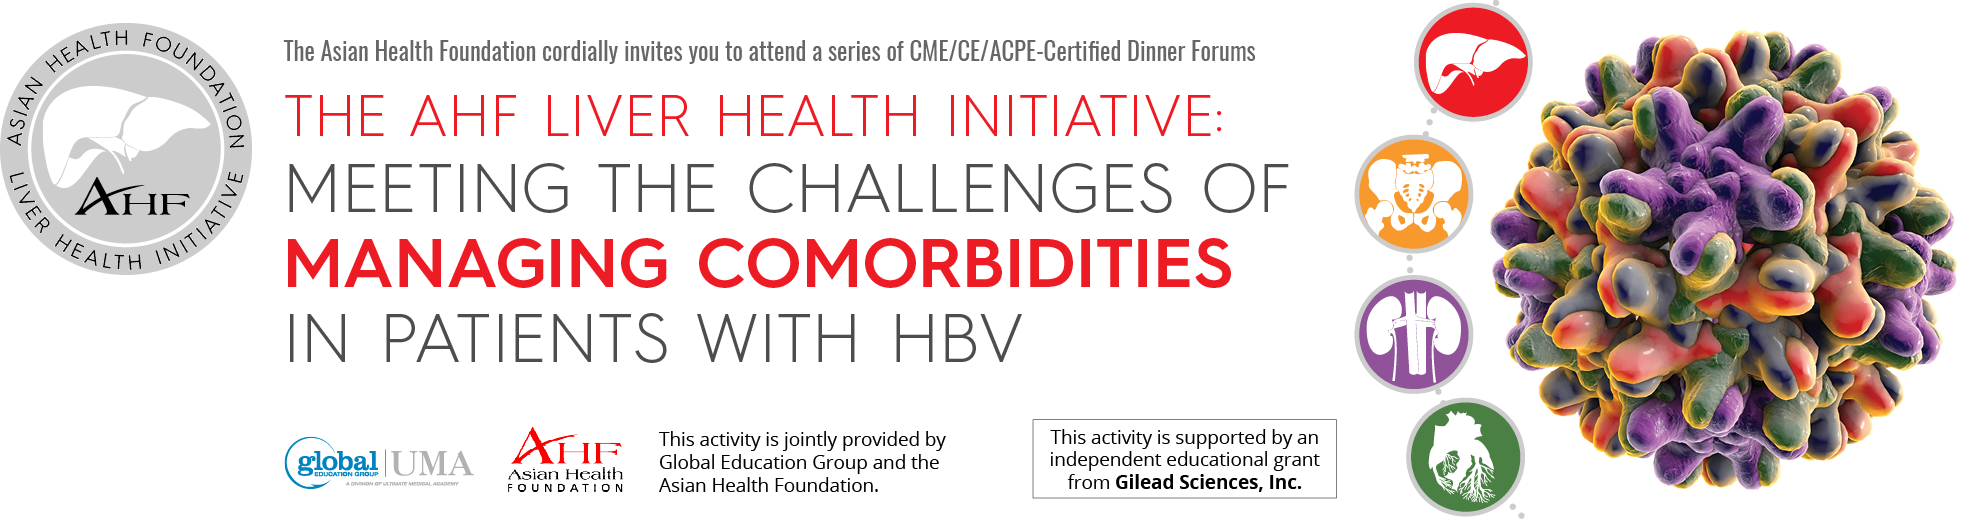 The AHF Liver Health Initiative: Meeting the Challenges of Managing Comorbidities In Patients With HBV